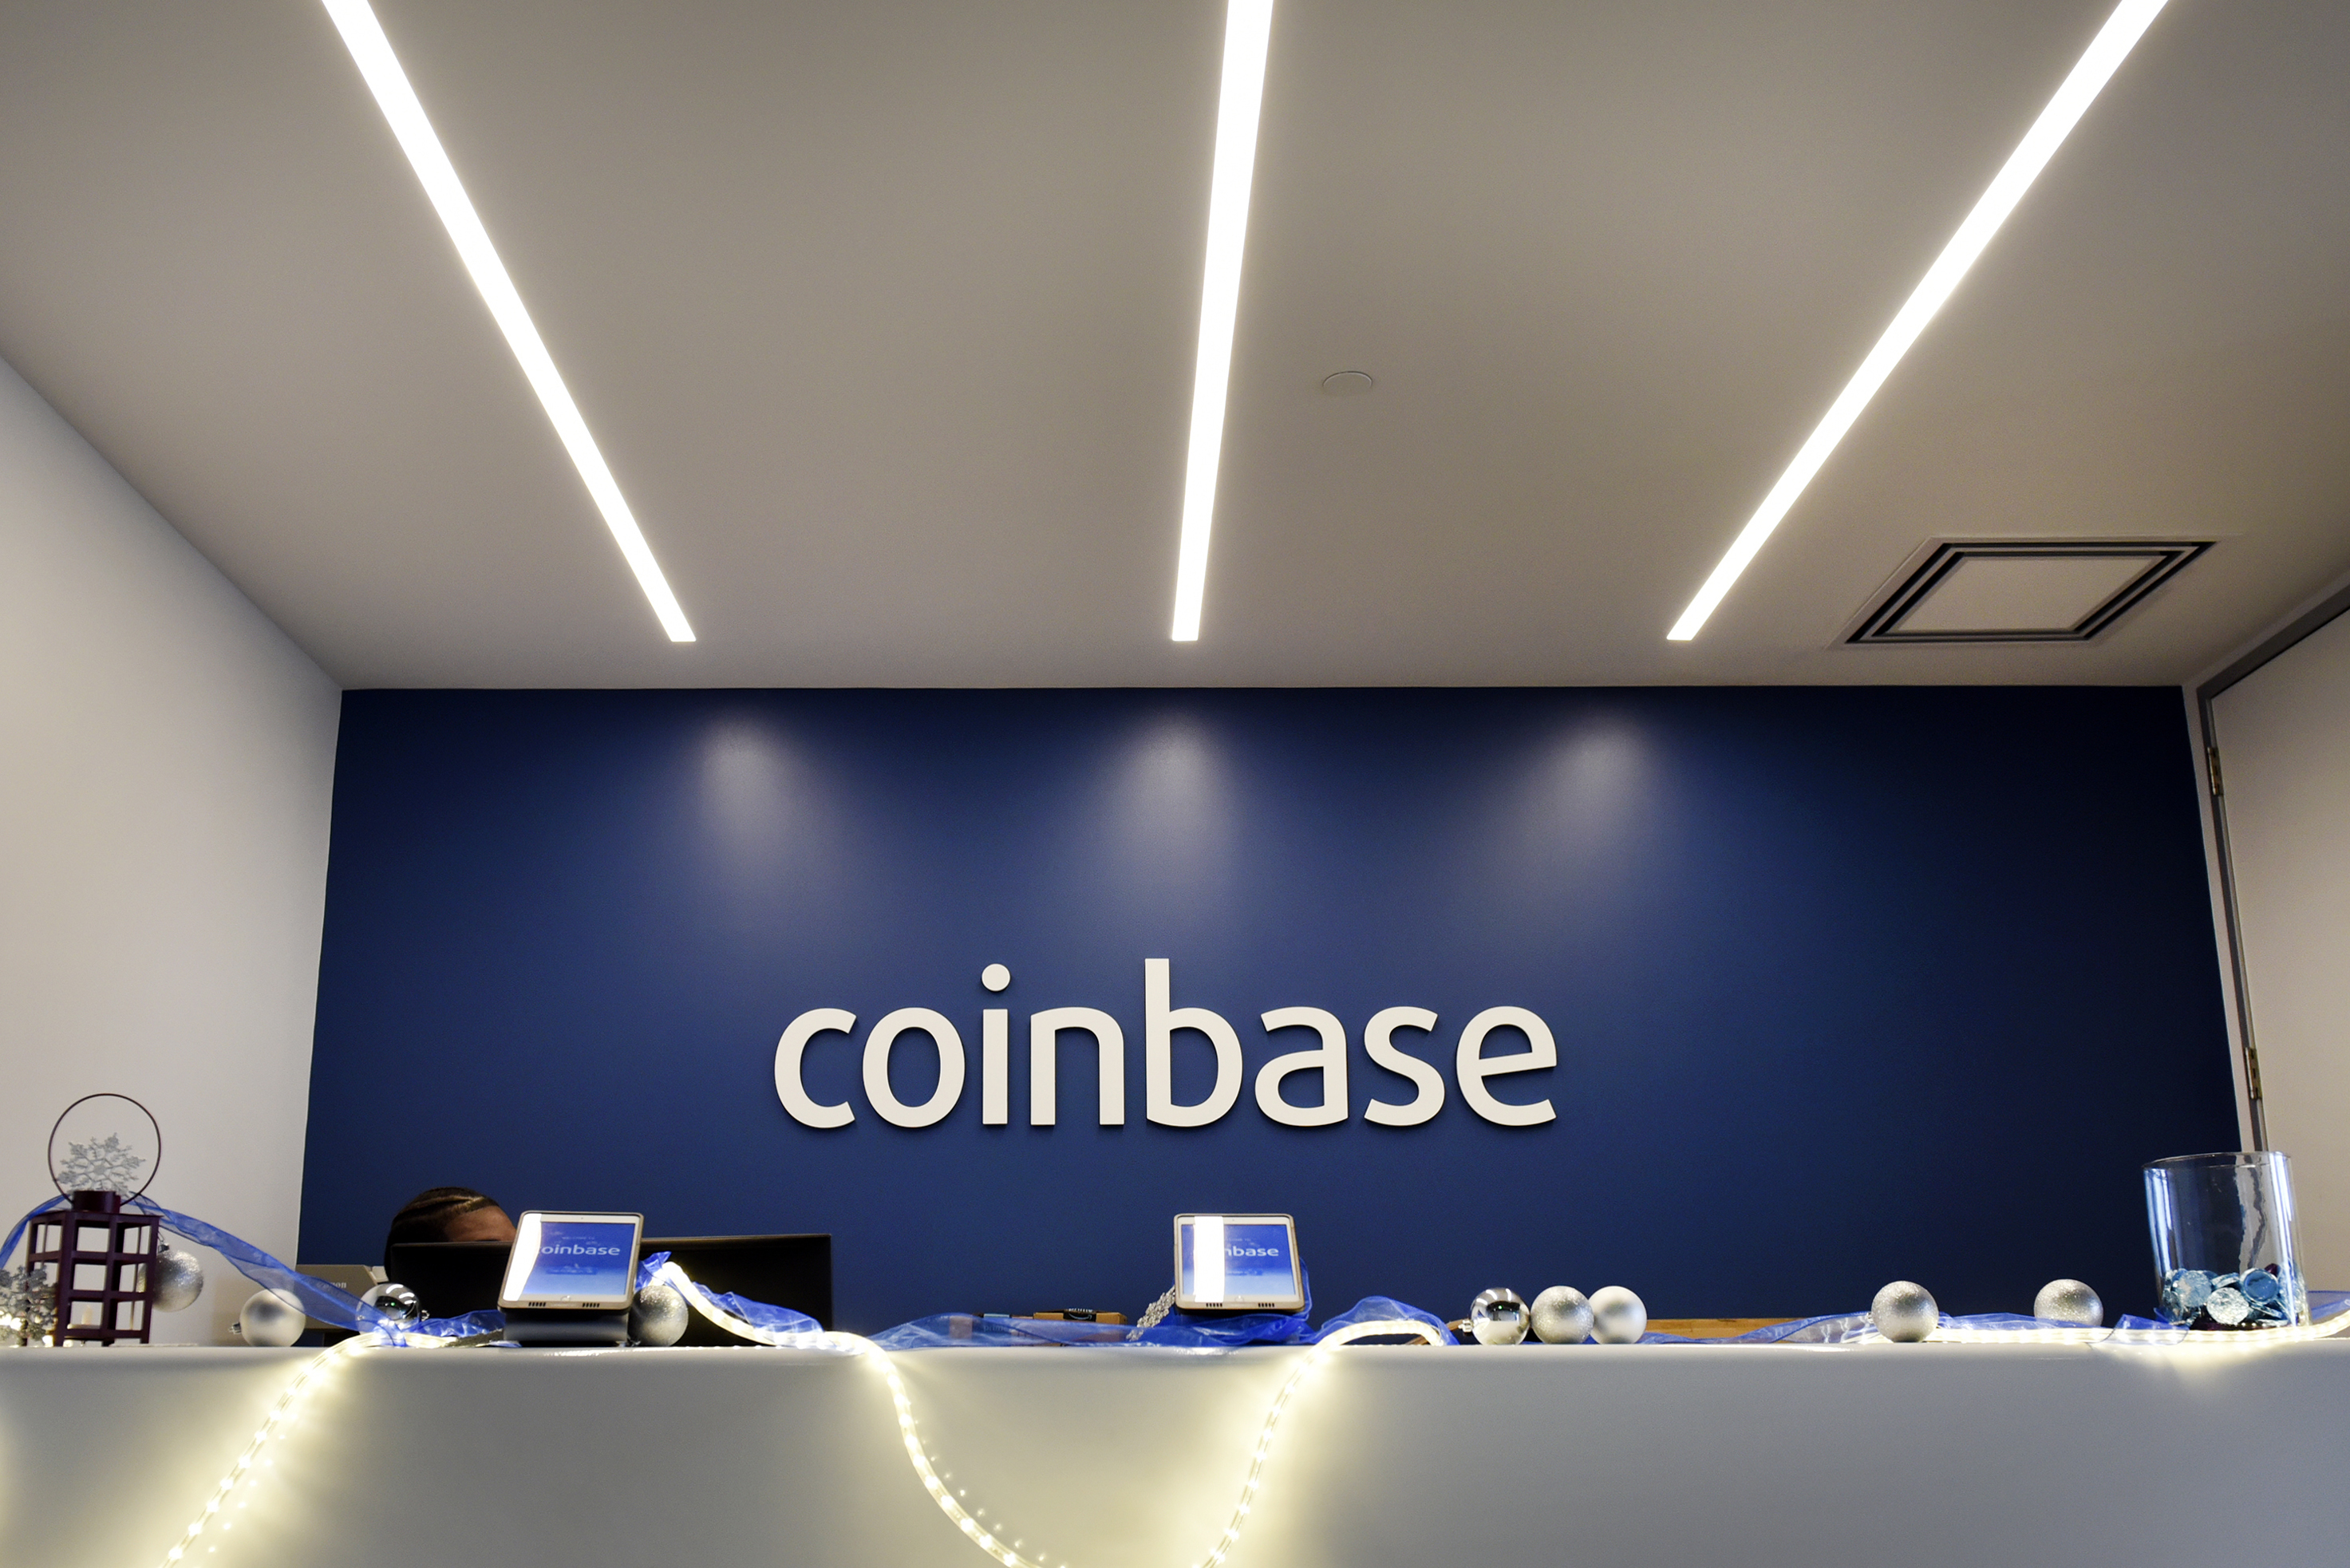 Morning Brief 2.20.20: Coinbase joins with Visa, getting closer to card issuance